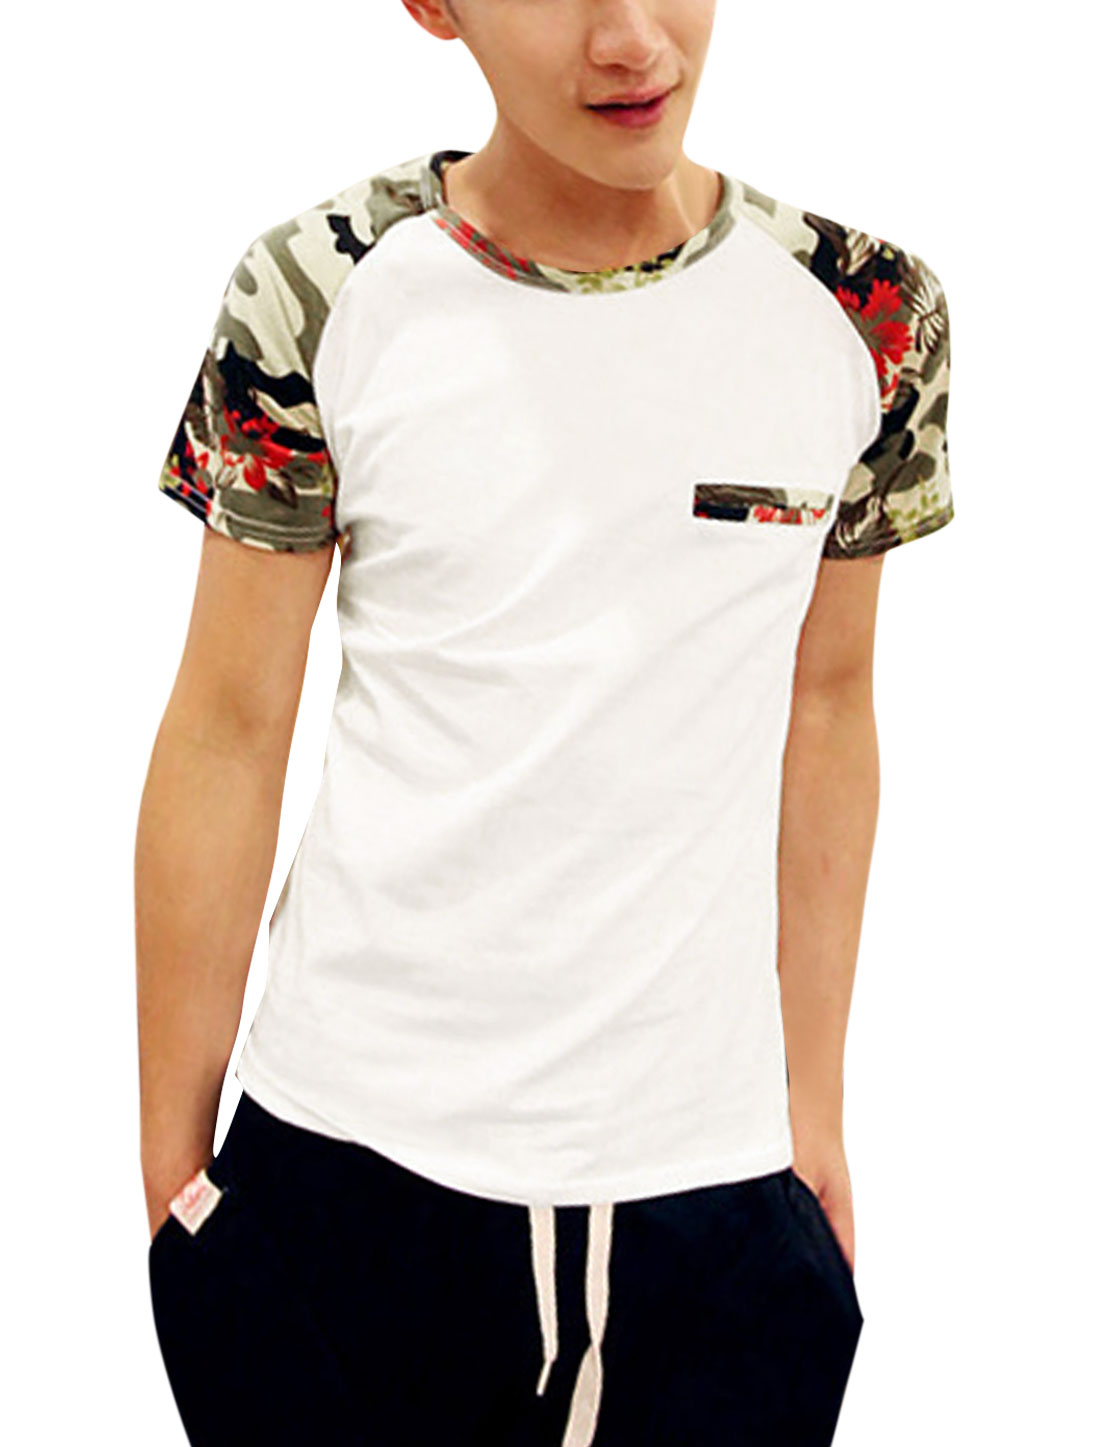 Men Floral Prints Round Neck Raglan Short Sleeve Casual T-Shirt White M